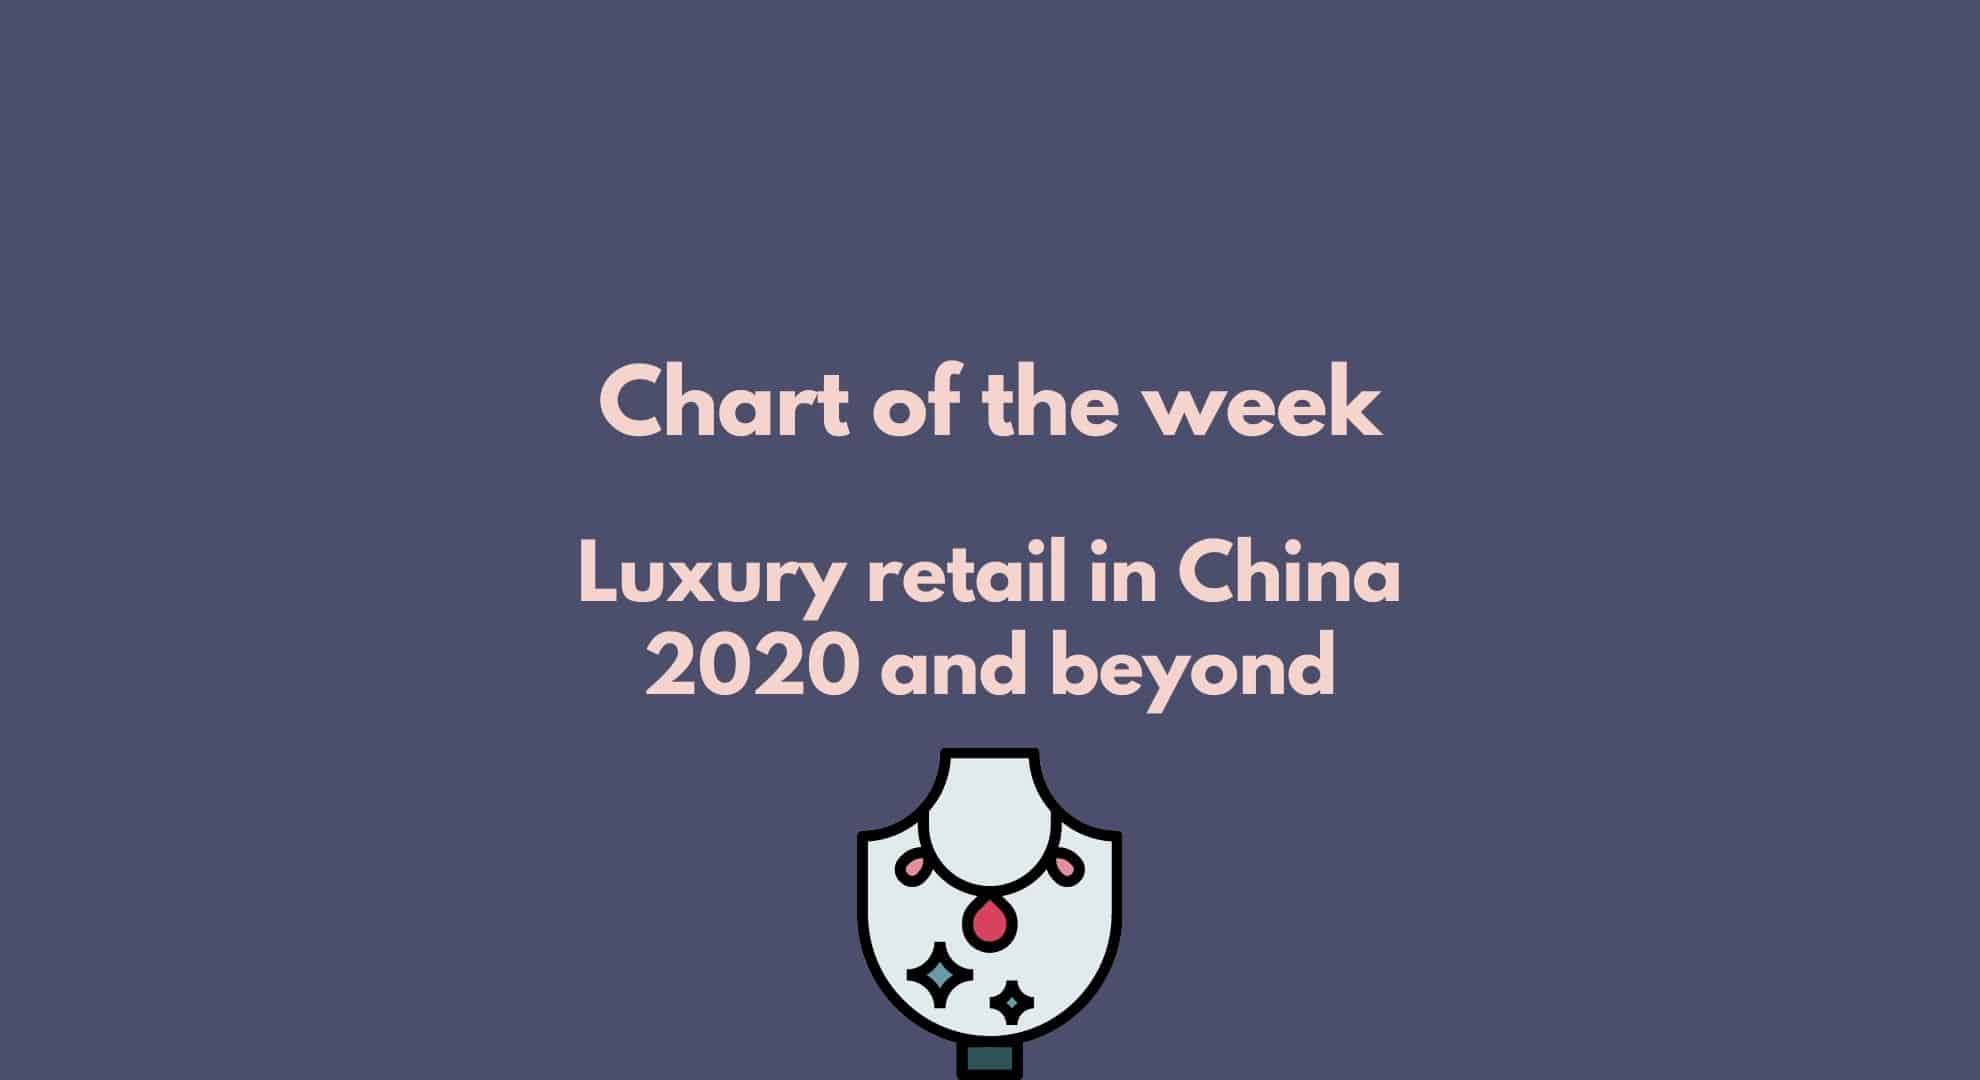 Chart of the week: Luxury retail in China: 2020 and beyond